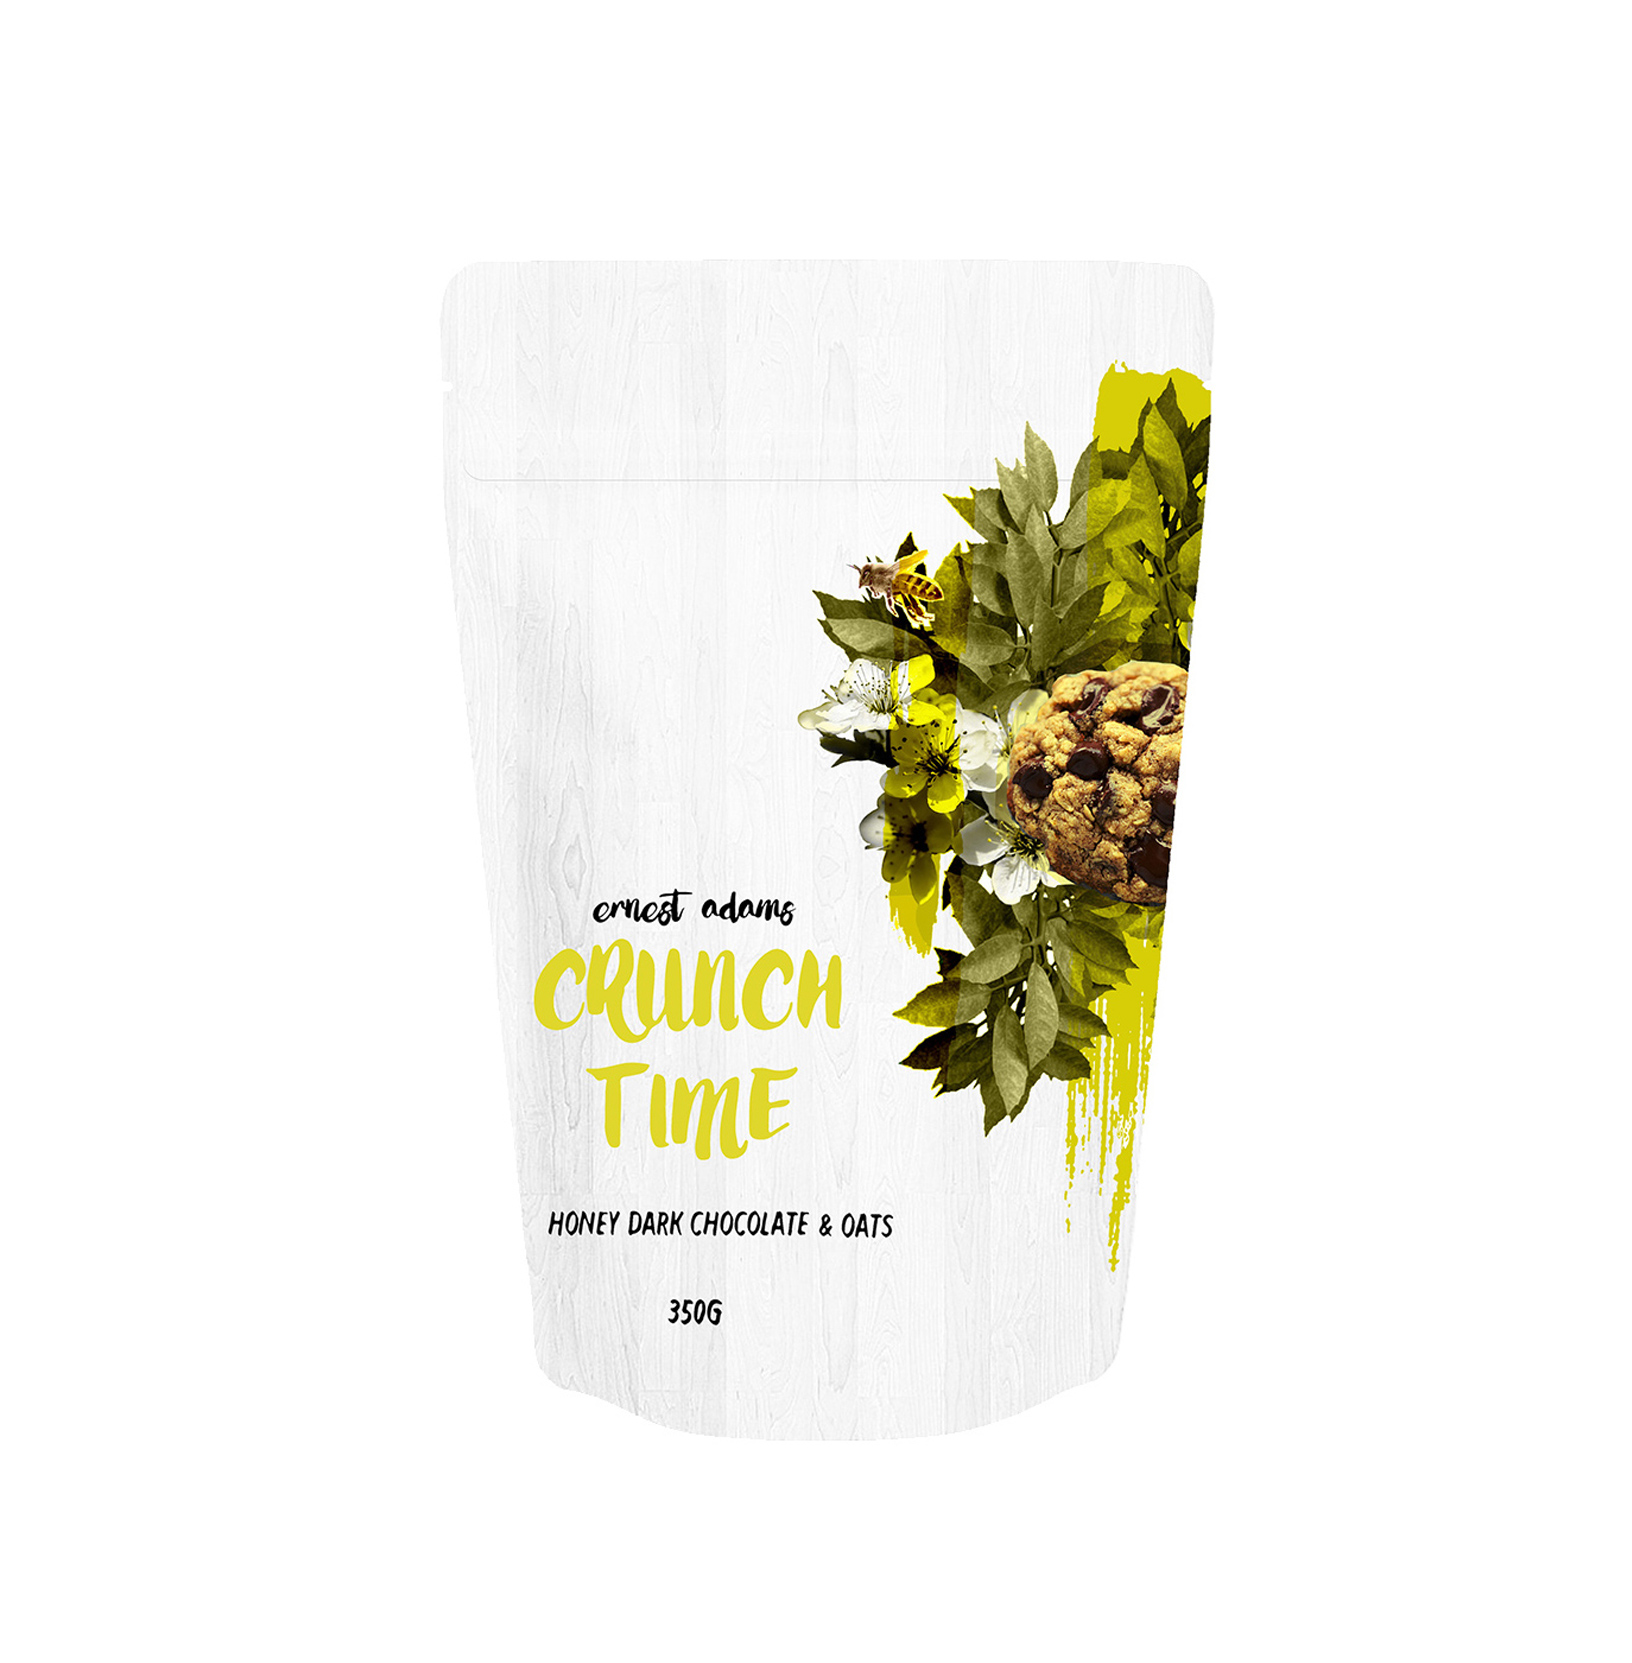 crunch time honey oats and dark choclate packaging